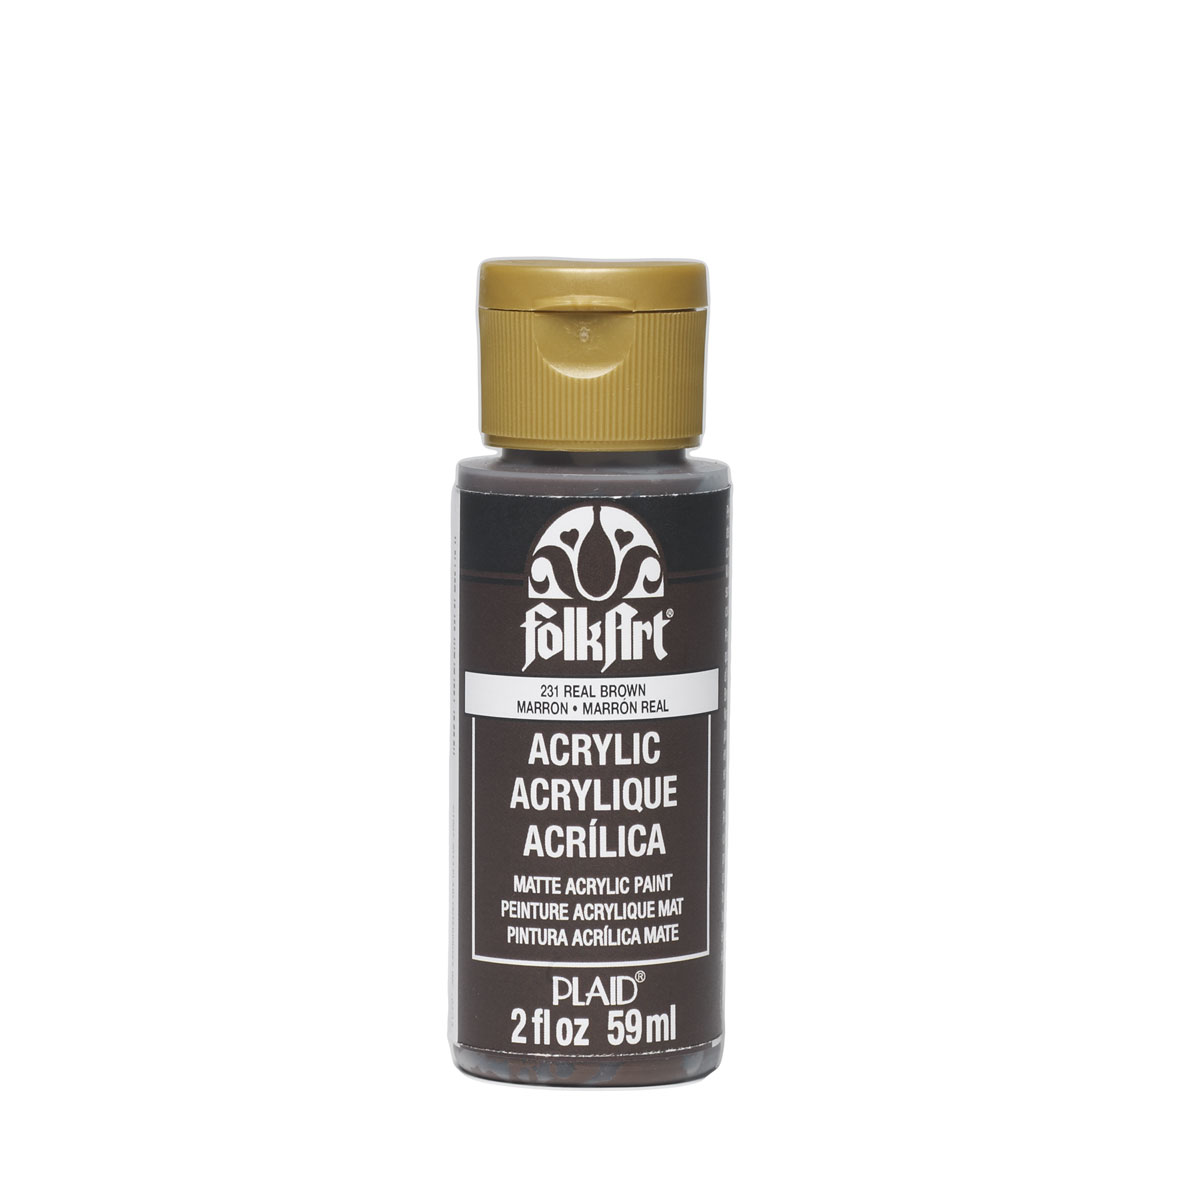 Plaid Folkart Acrylic Paint In Assorted Colors (2 Oz),Real Brown